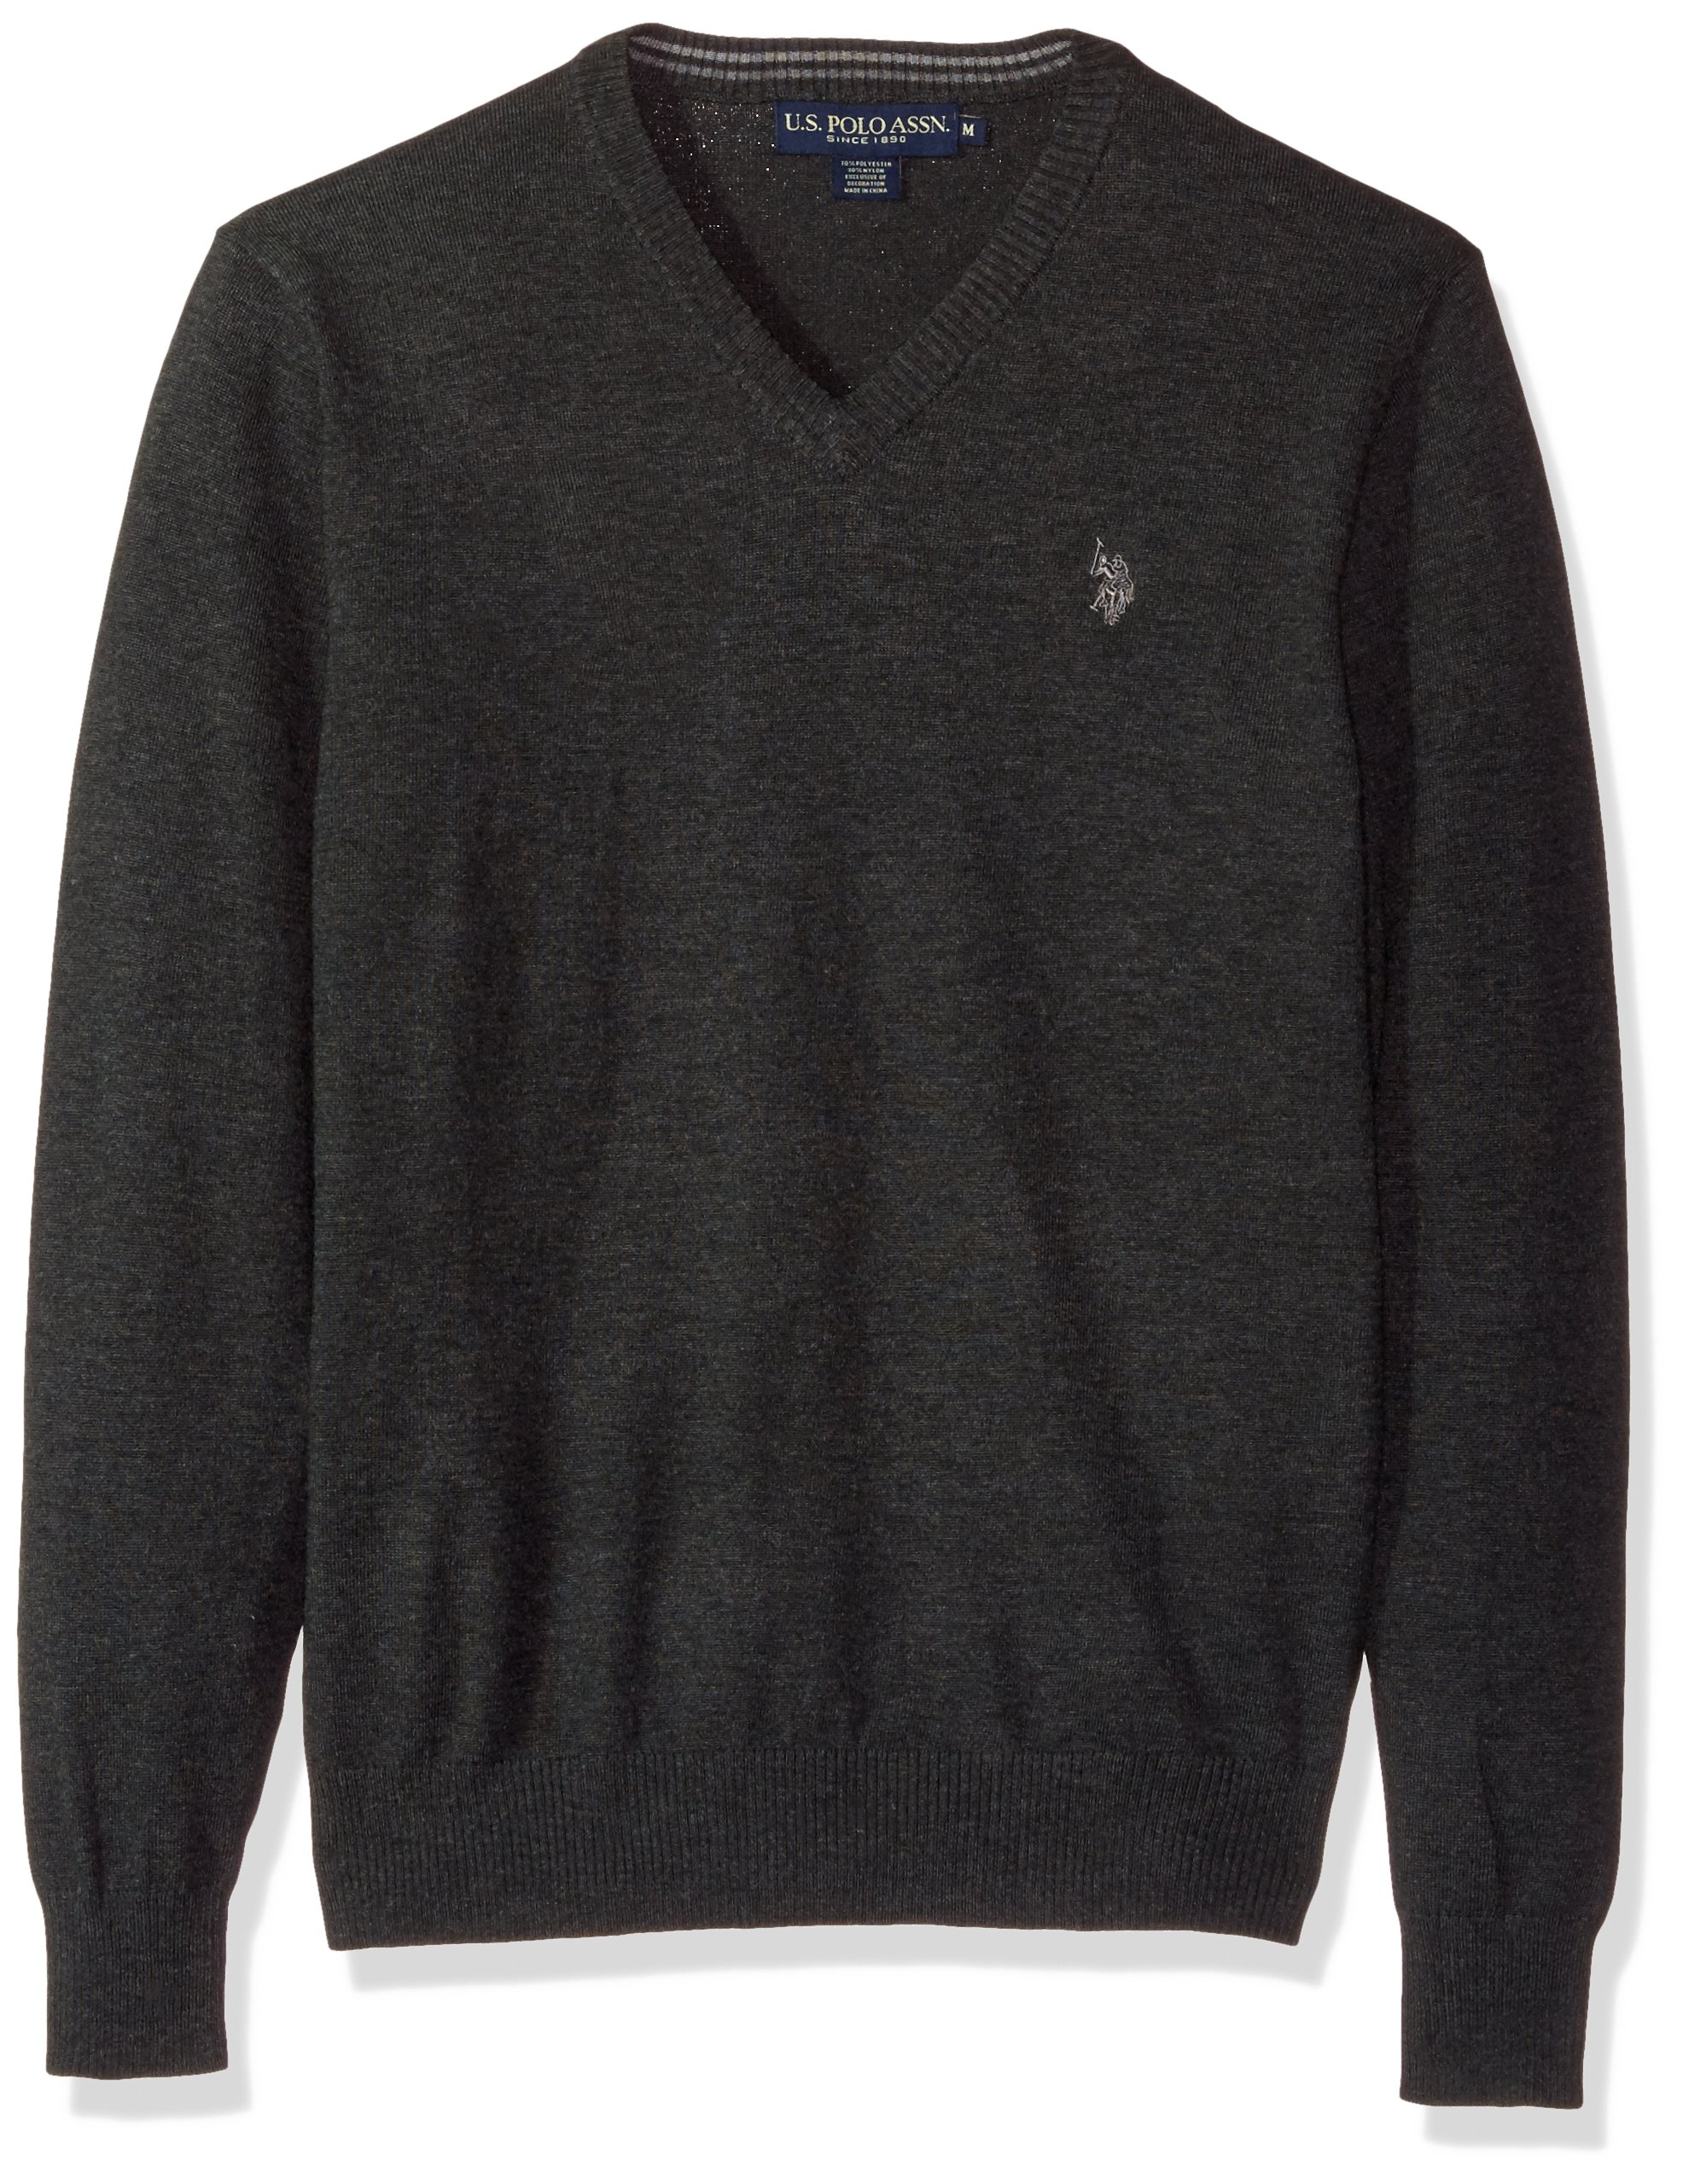 U.S. Polo Assn. Men's Stretch Fabric Solid V-Neck Sweater, Charcoal Heather, X-Large